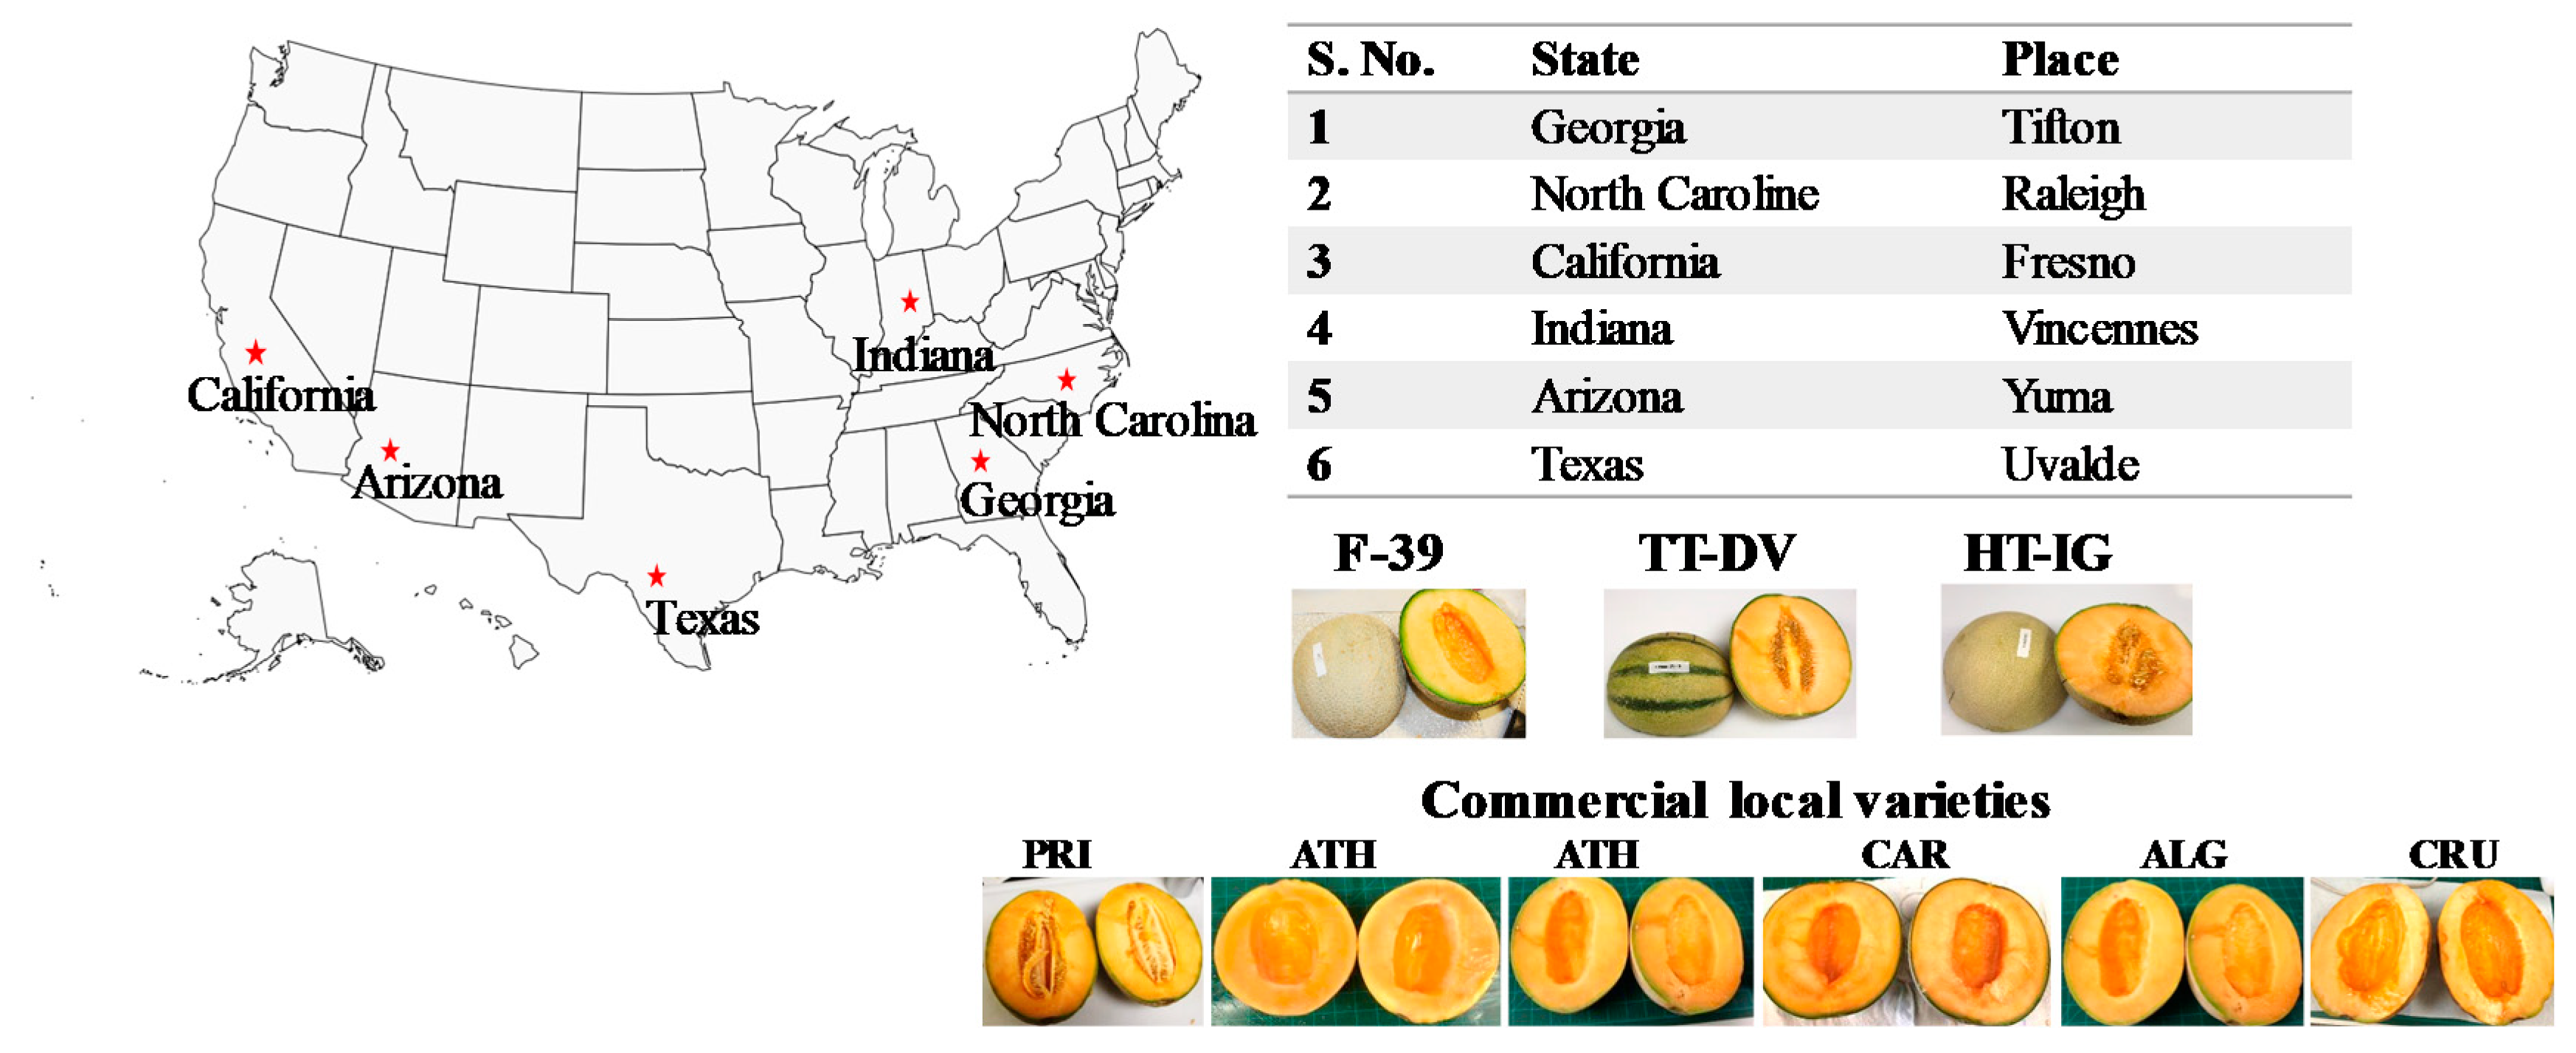 Plants Free Full Text Multivariate Analysis Of Amino Acids And Health Beneficial Properties Of Cantaloupe Varieties Grown In Six Locations In The United States Cantaloupes are also commonly known as muskmelons, mush melons, rock melons and persian. multivariate analysis of amino acids